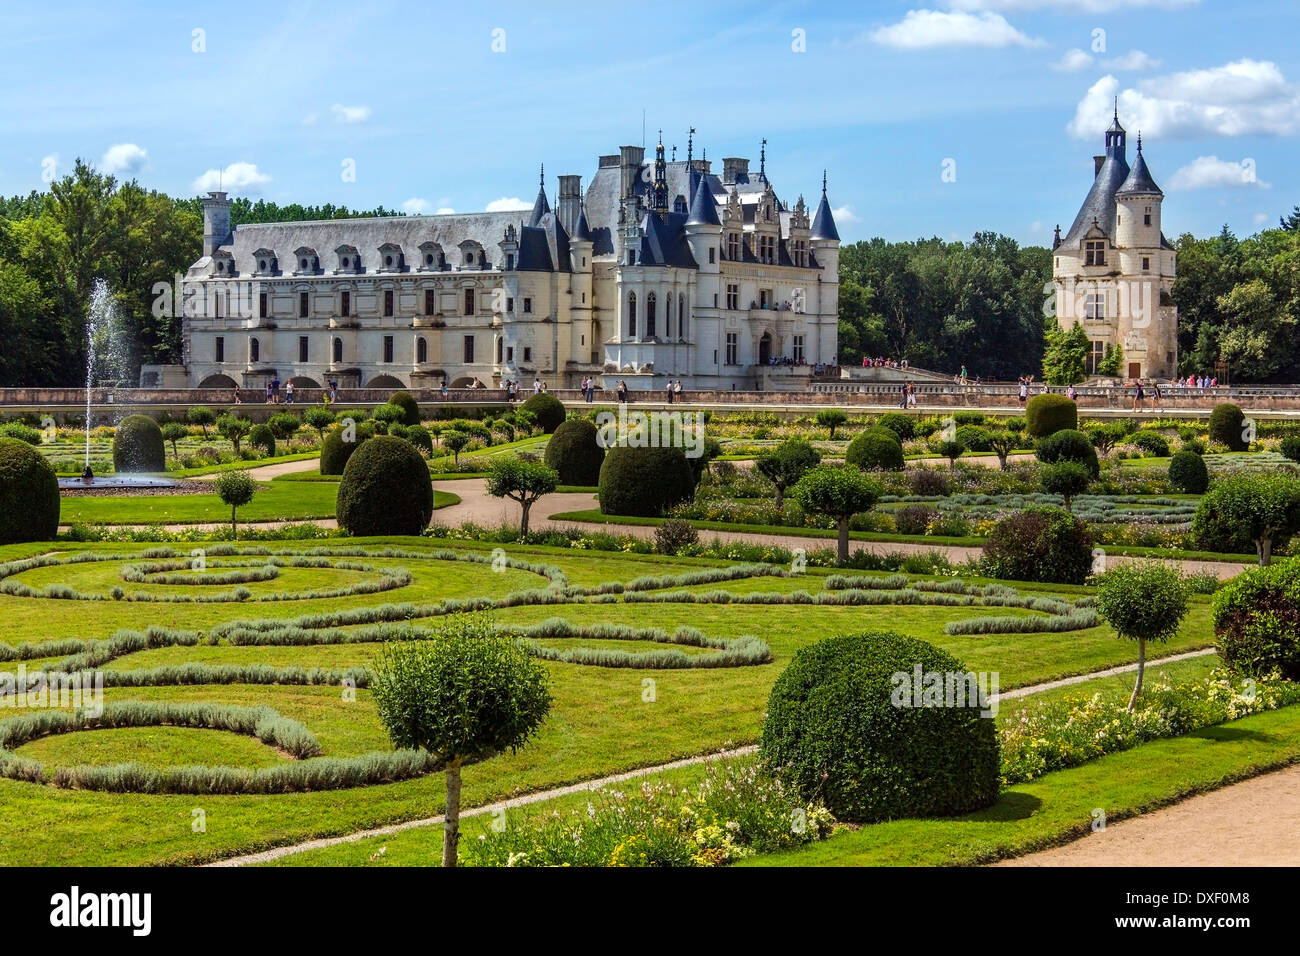 Chateau de Chenonceau spanning the River Cher in the Loire Valley in France - Stock Image